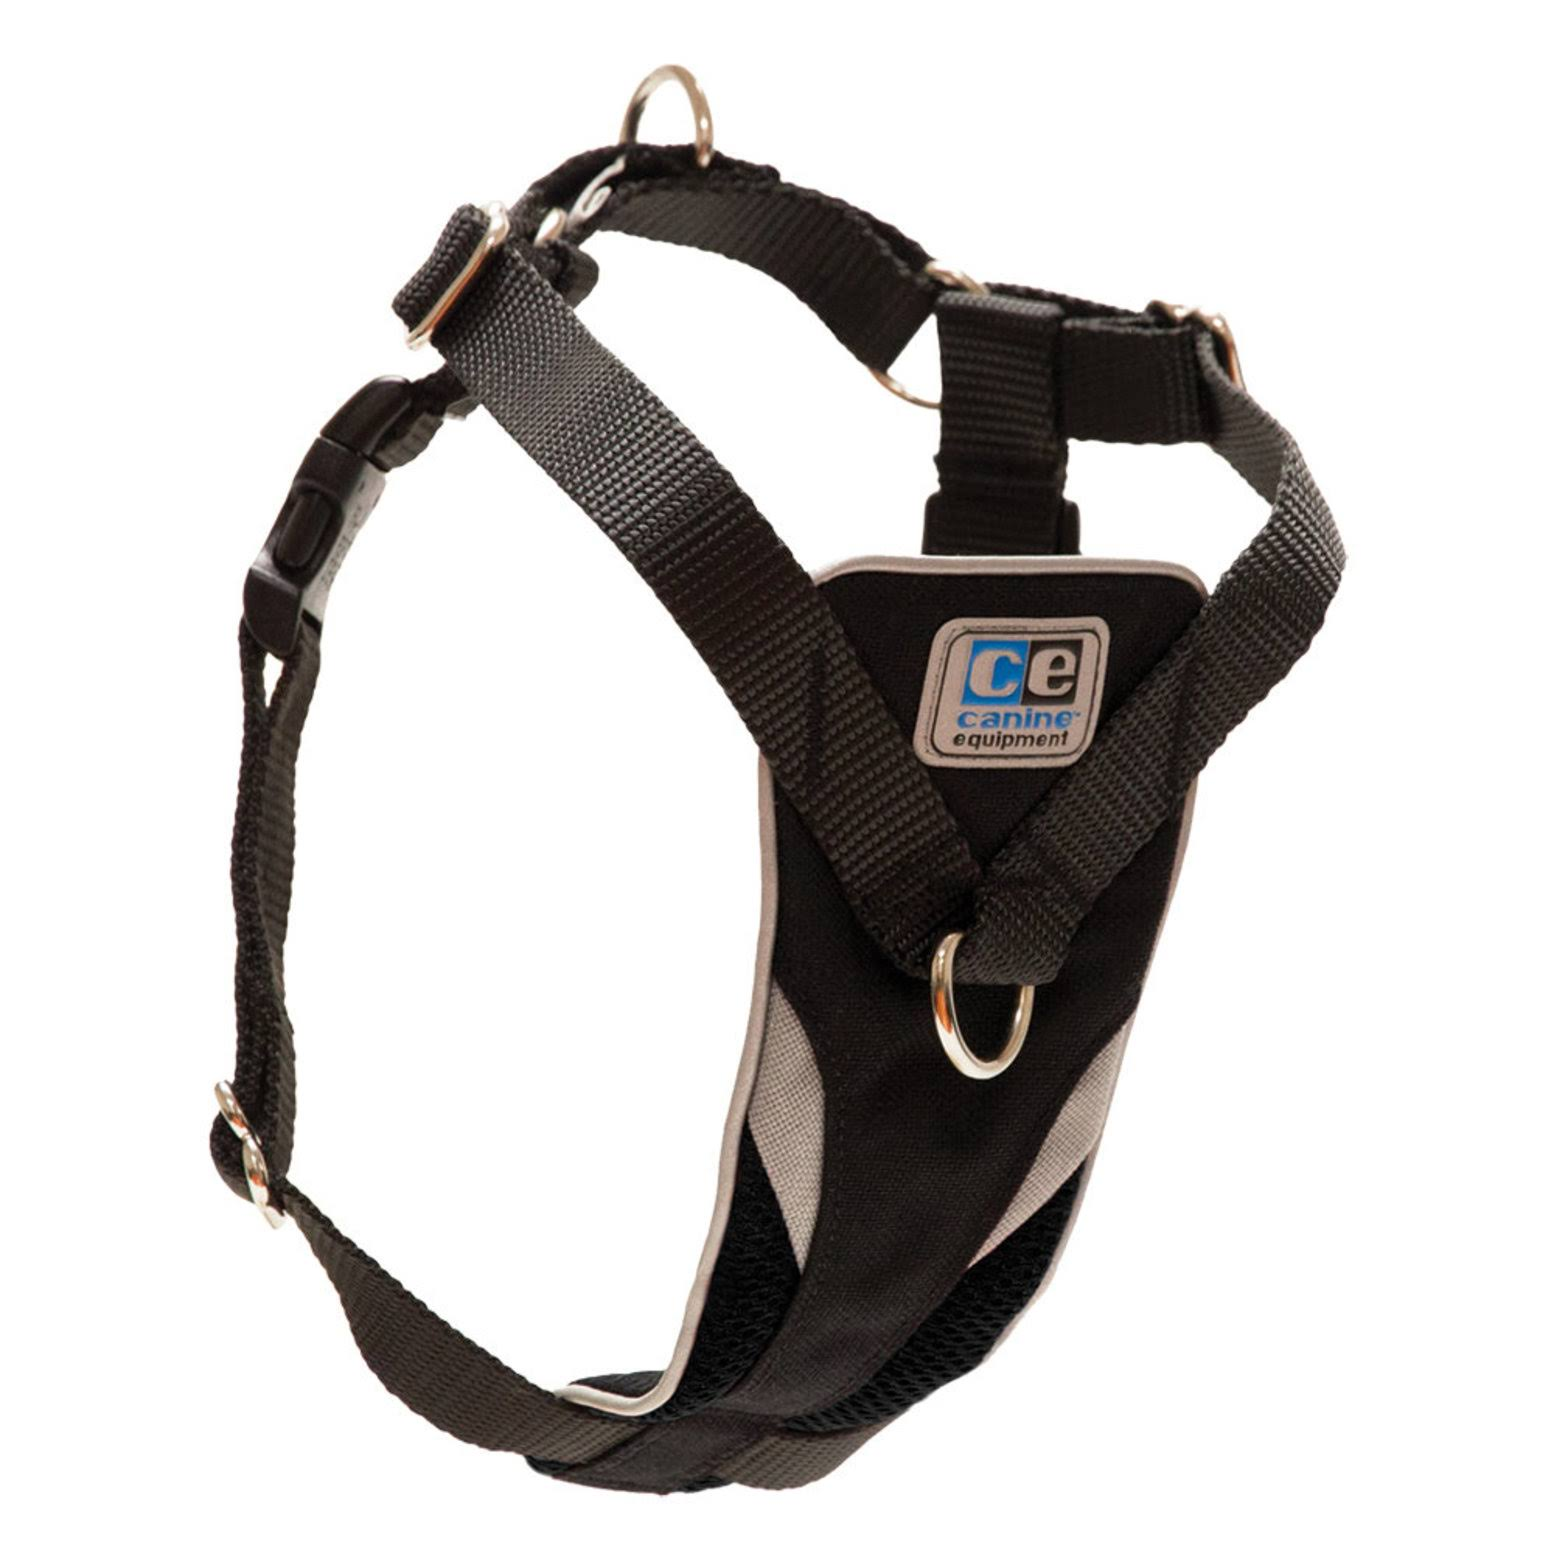 Canine Equipment Ultimate Control Dog Harness - Black, Large